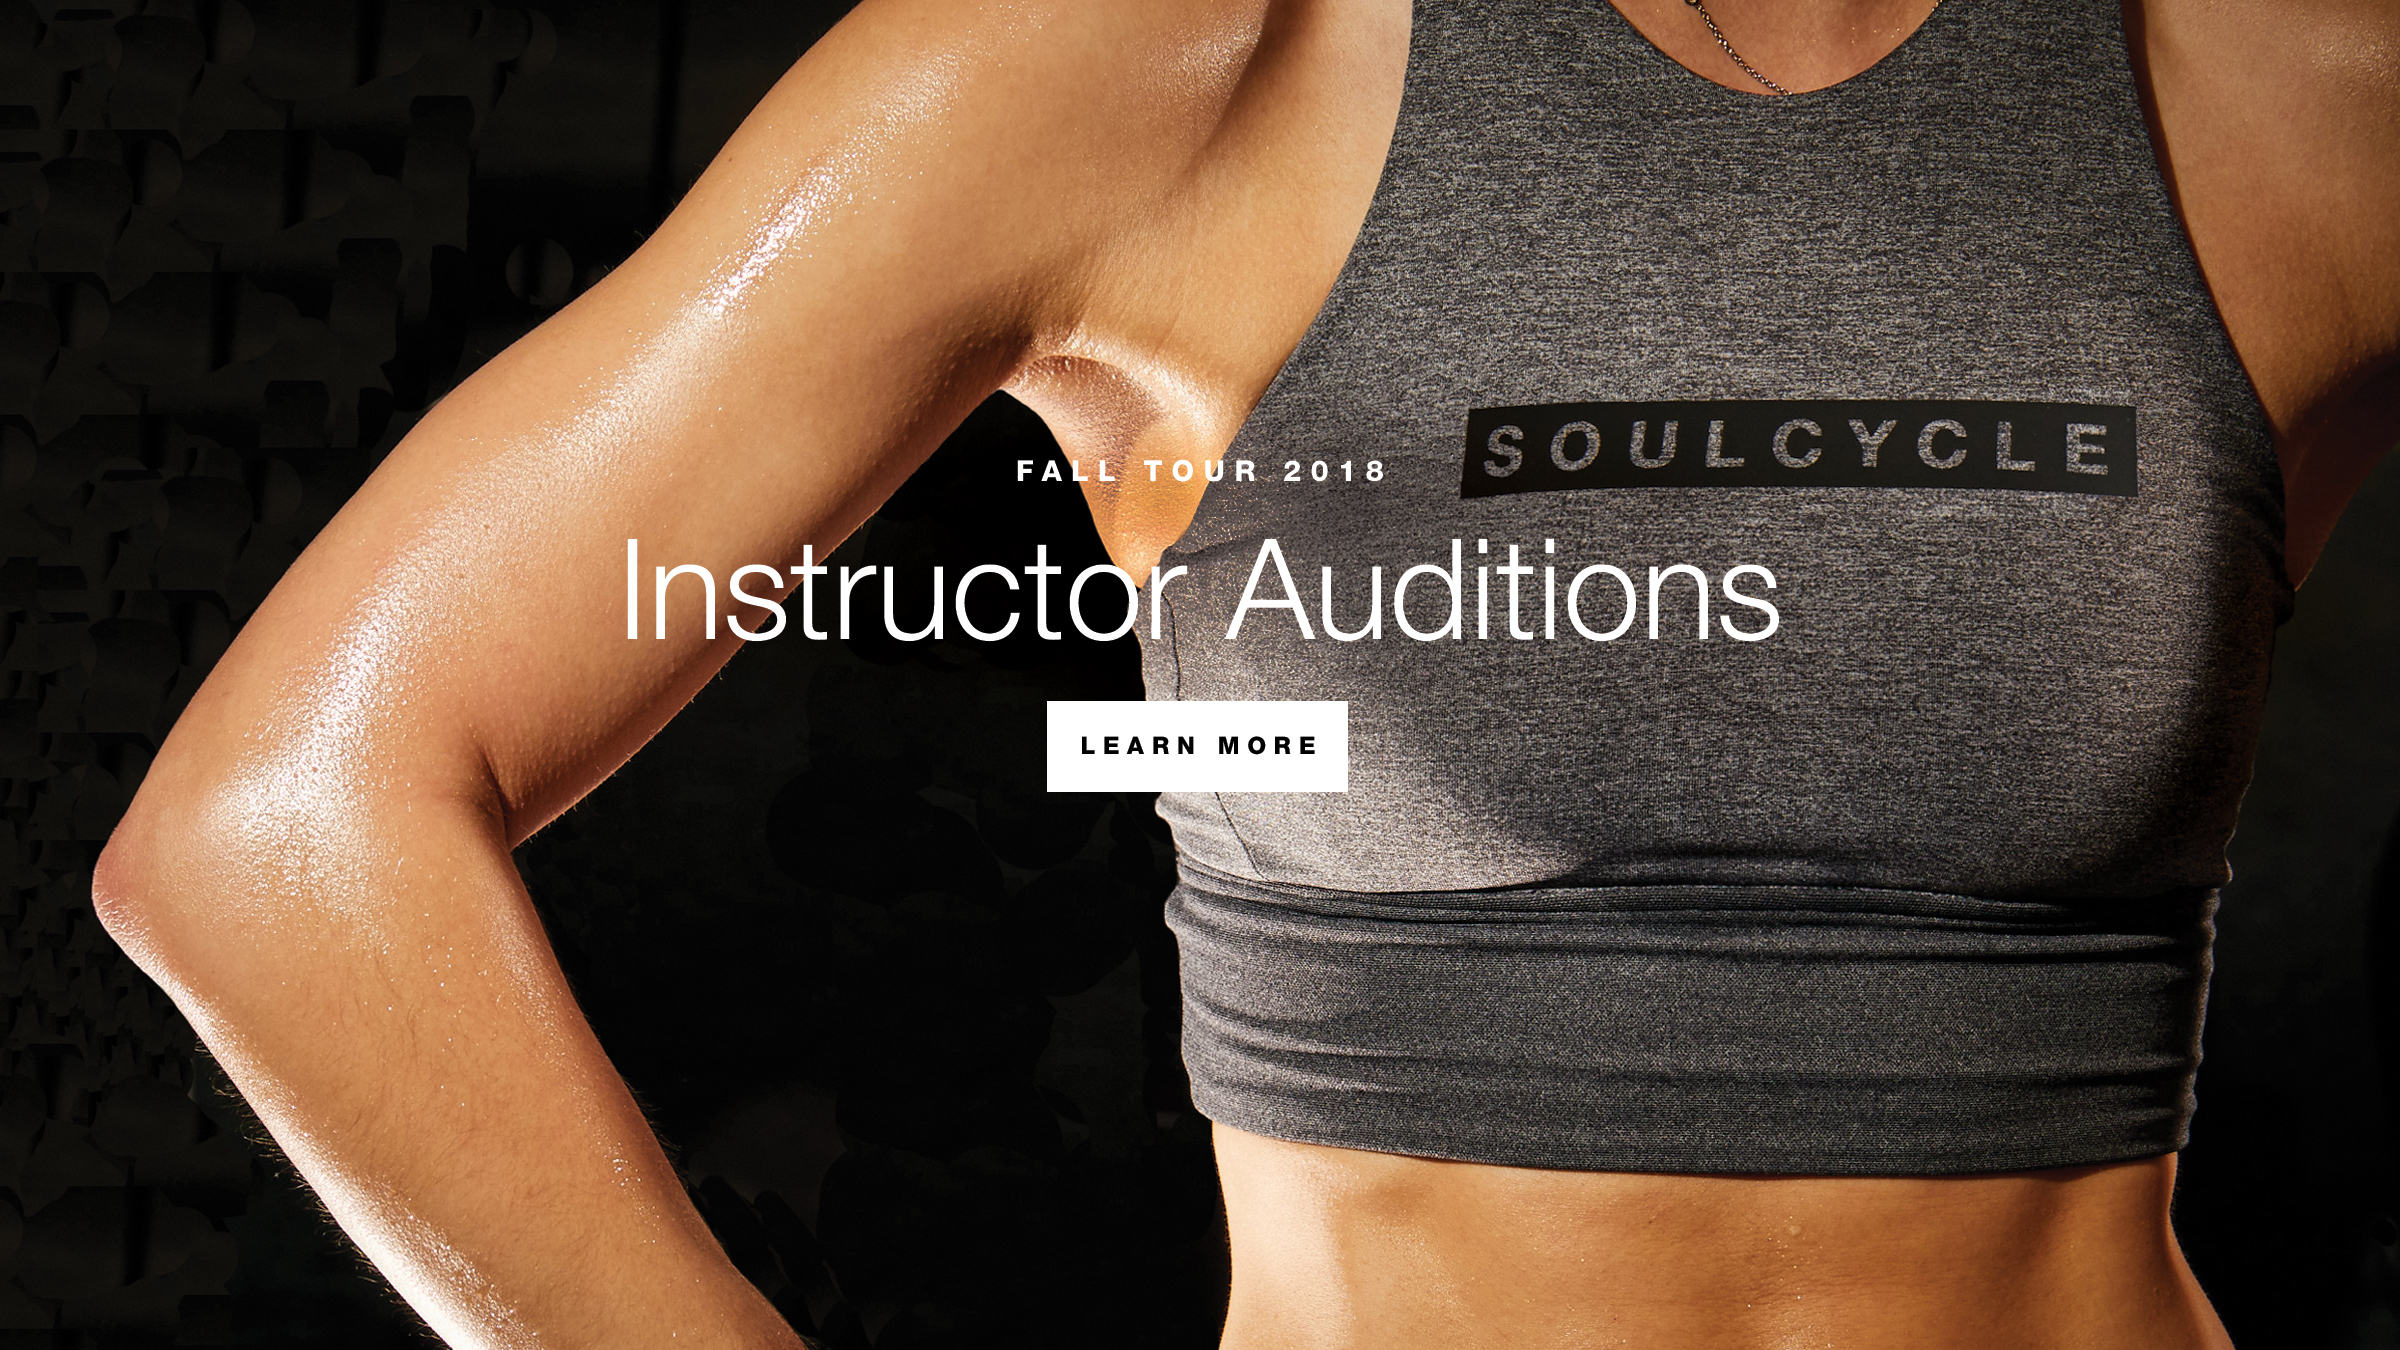 Fall Instructor Audition Tour